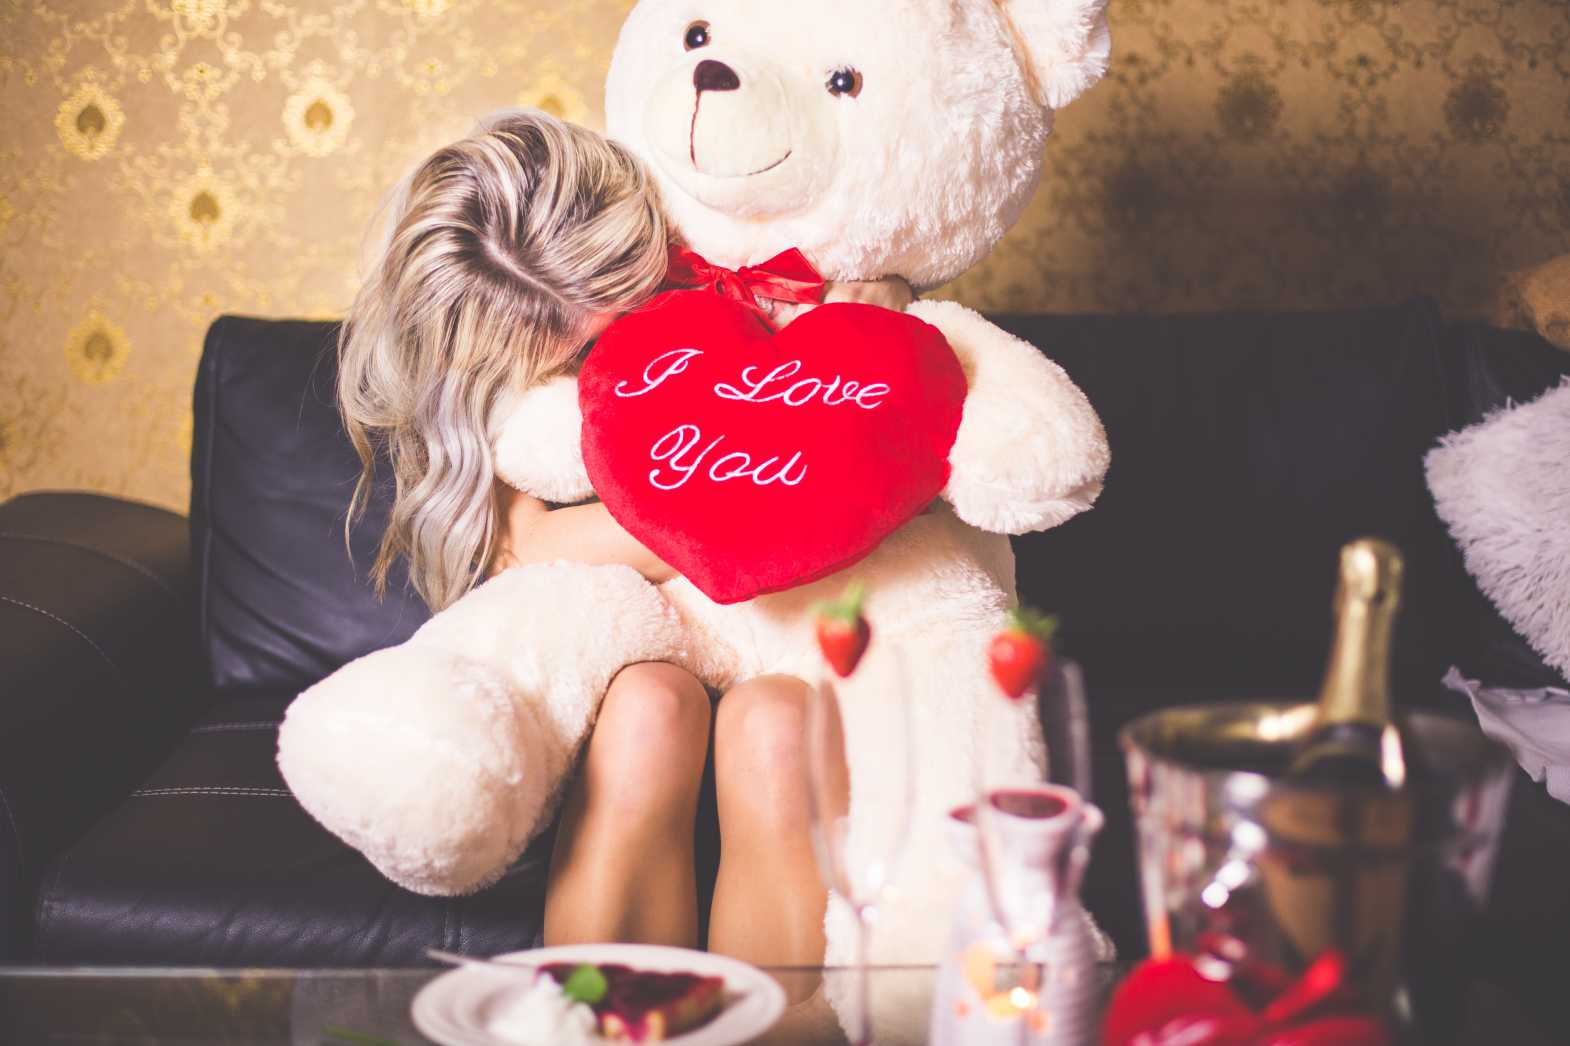 happy girl with teddy bear happy valentines day free stock photos picjumbo.com  - Valentýnské fotografie zdarma – picjumbo.com